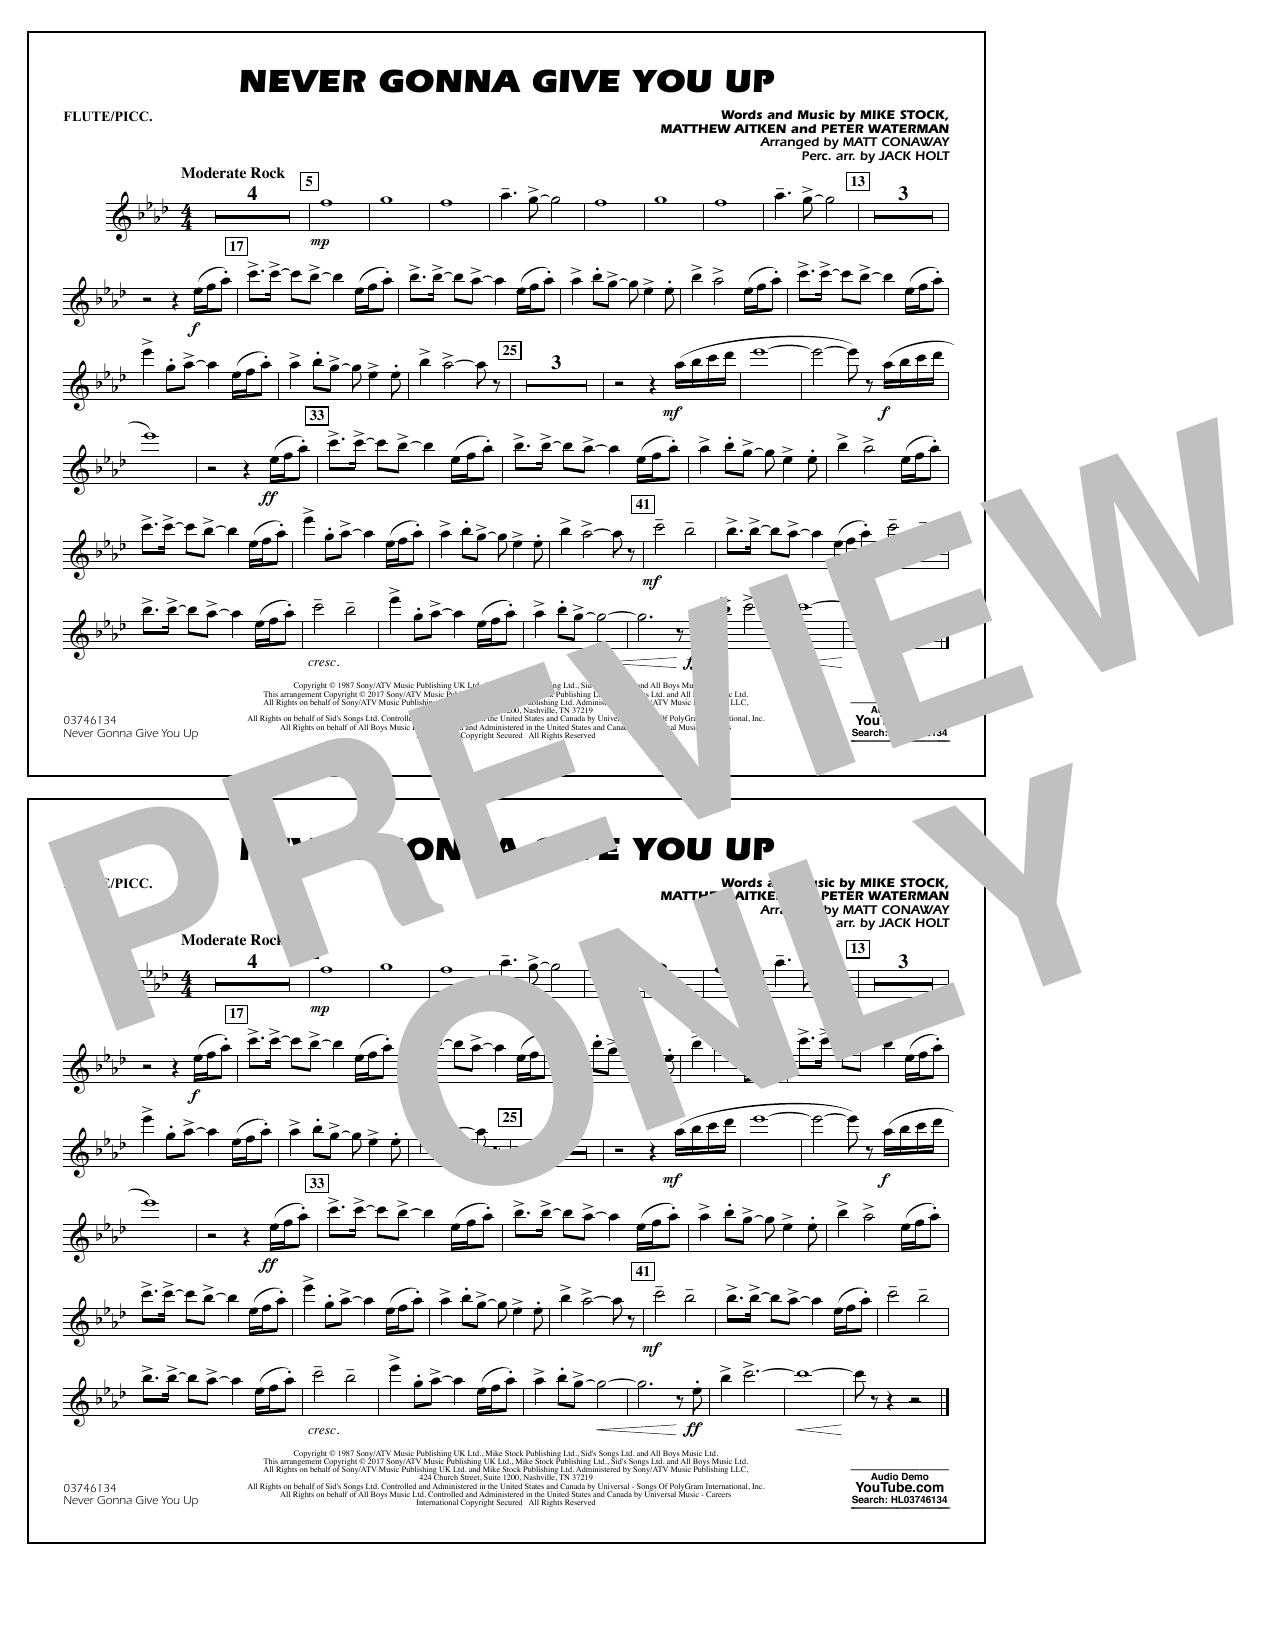 Never Gonna Give You Up - Flute/Piccolo Sheet Music